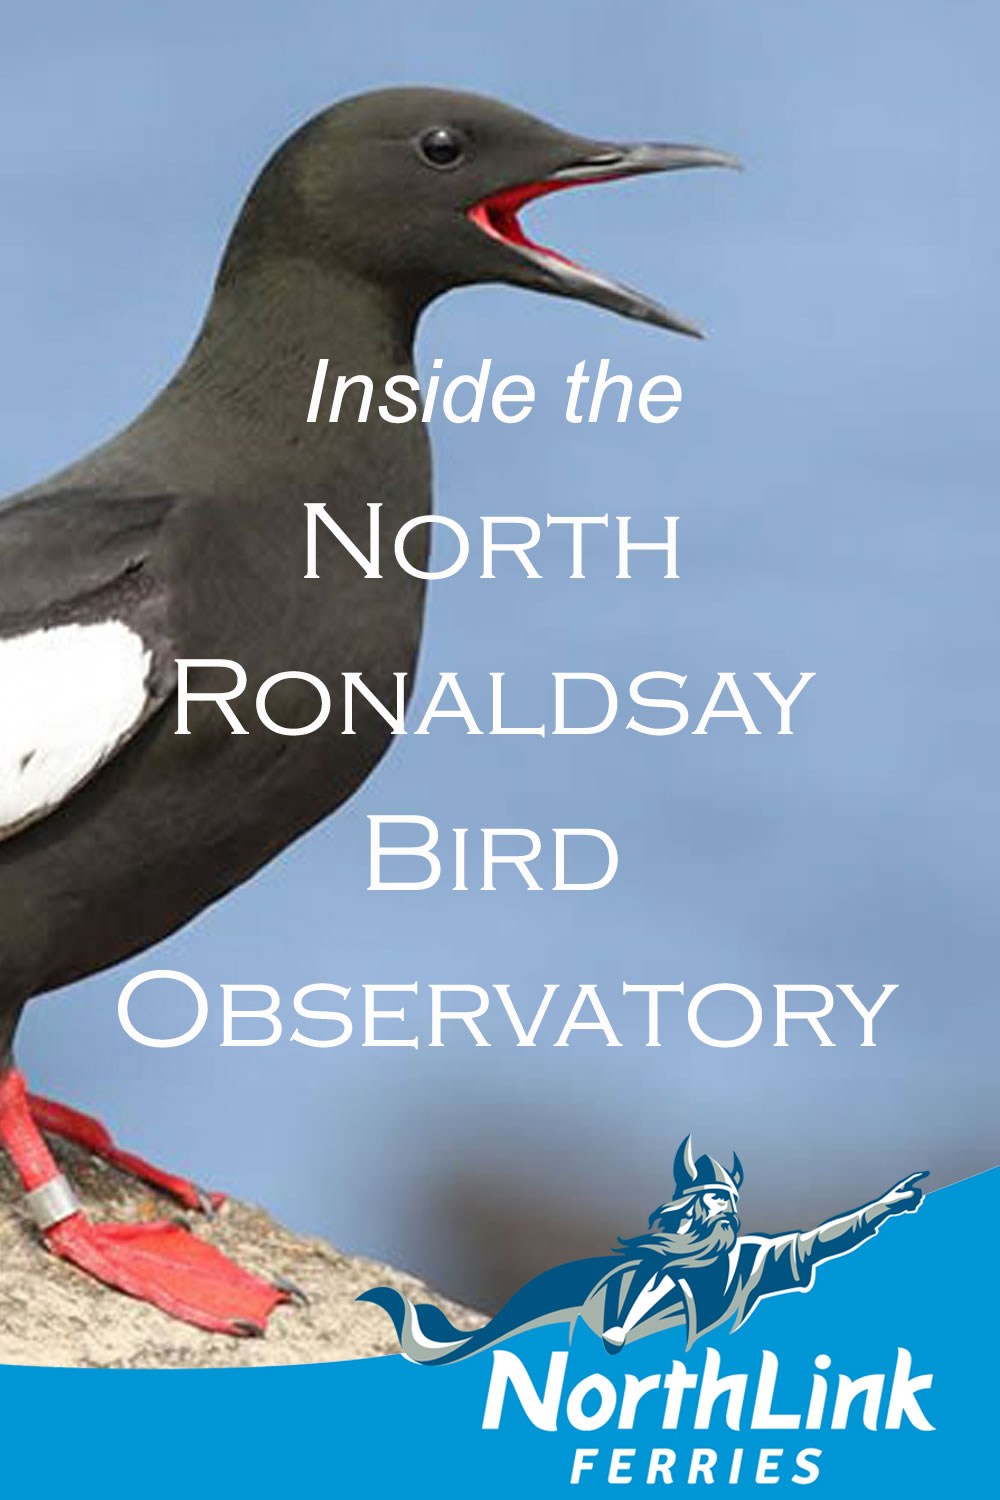 Inside the North Ronaldsay Bird Observatory